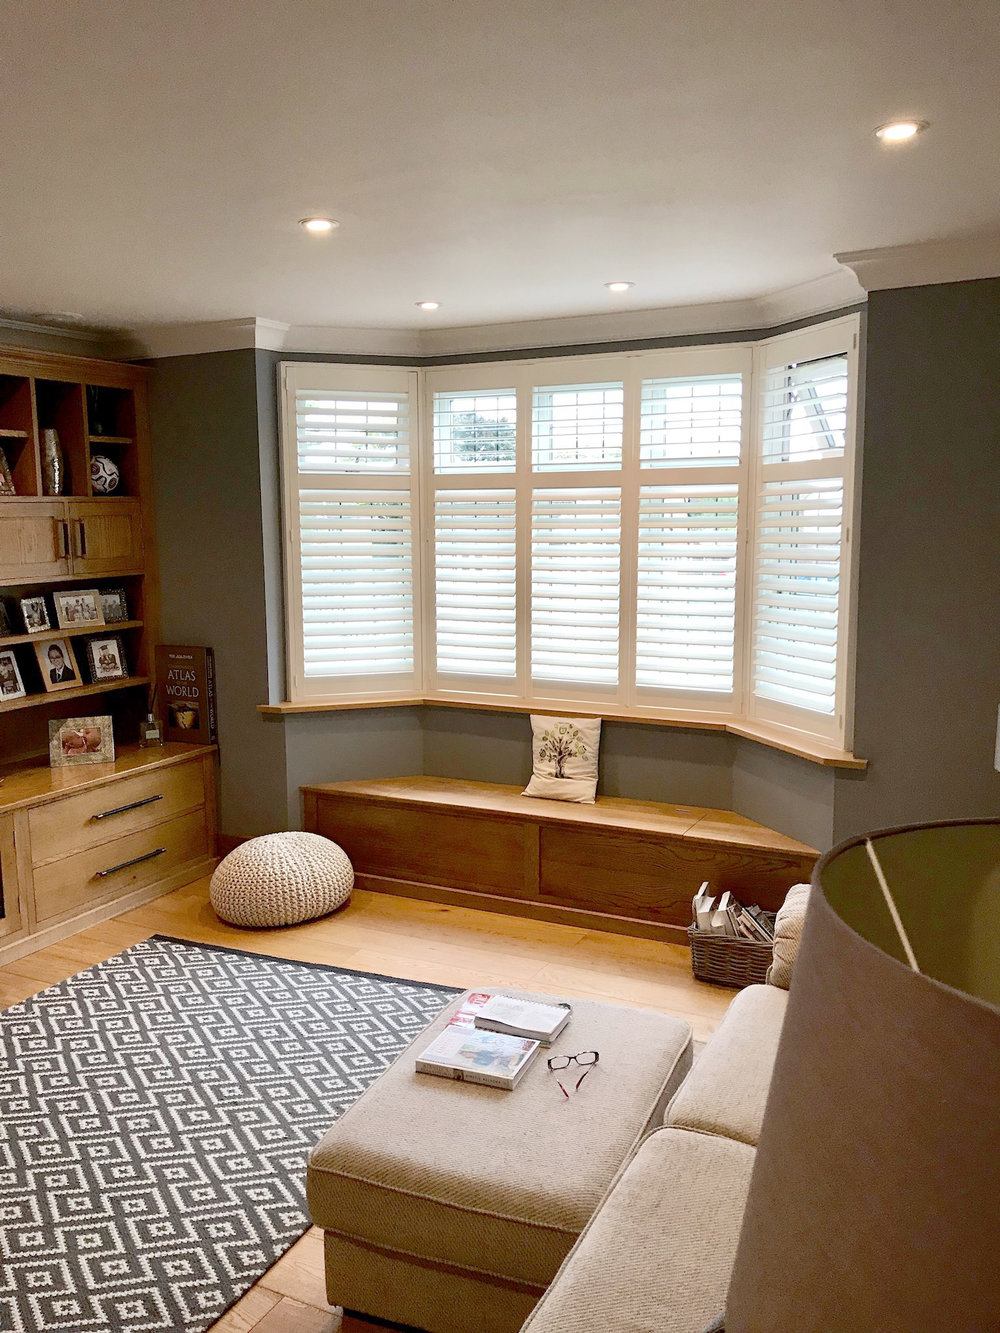 Shutters have become an attractive alternative to curtains and blinds